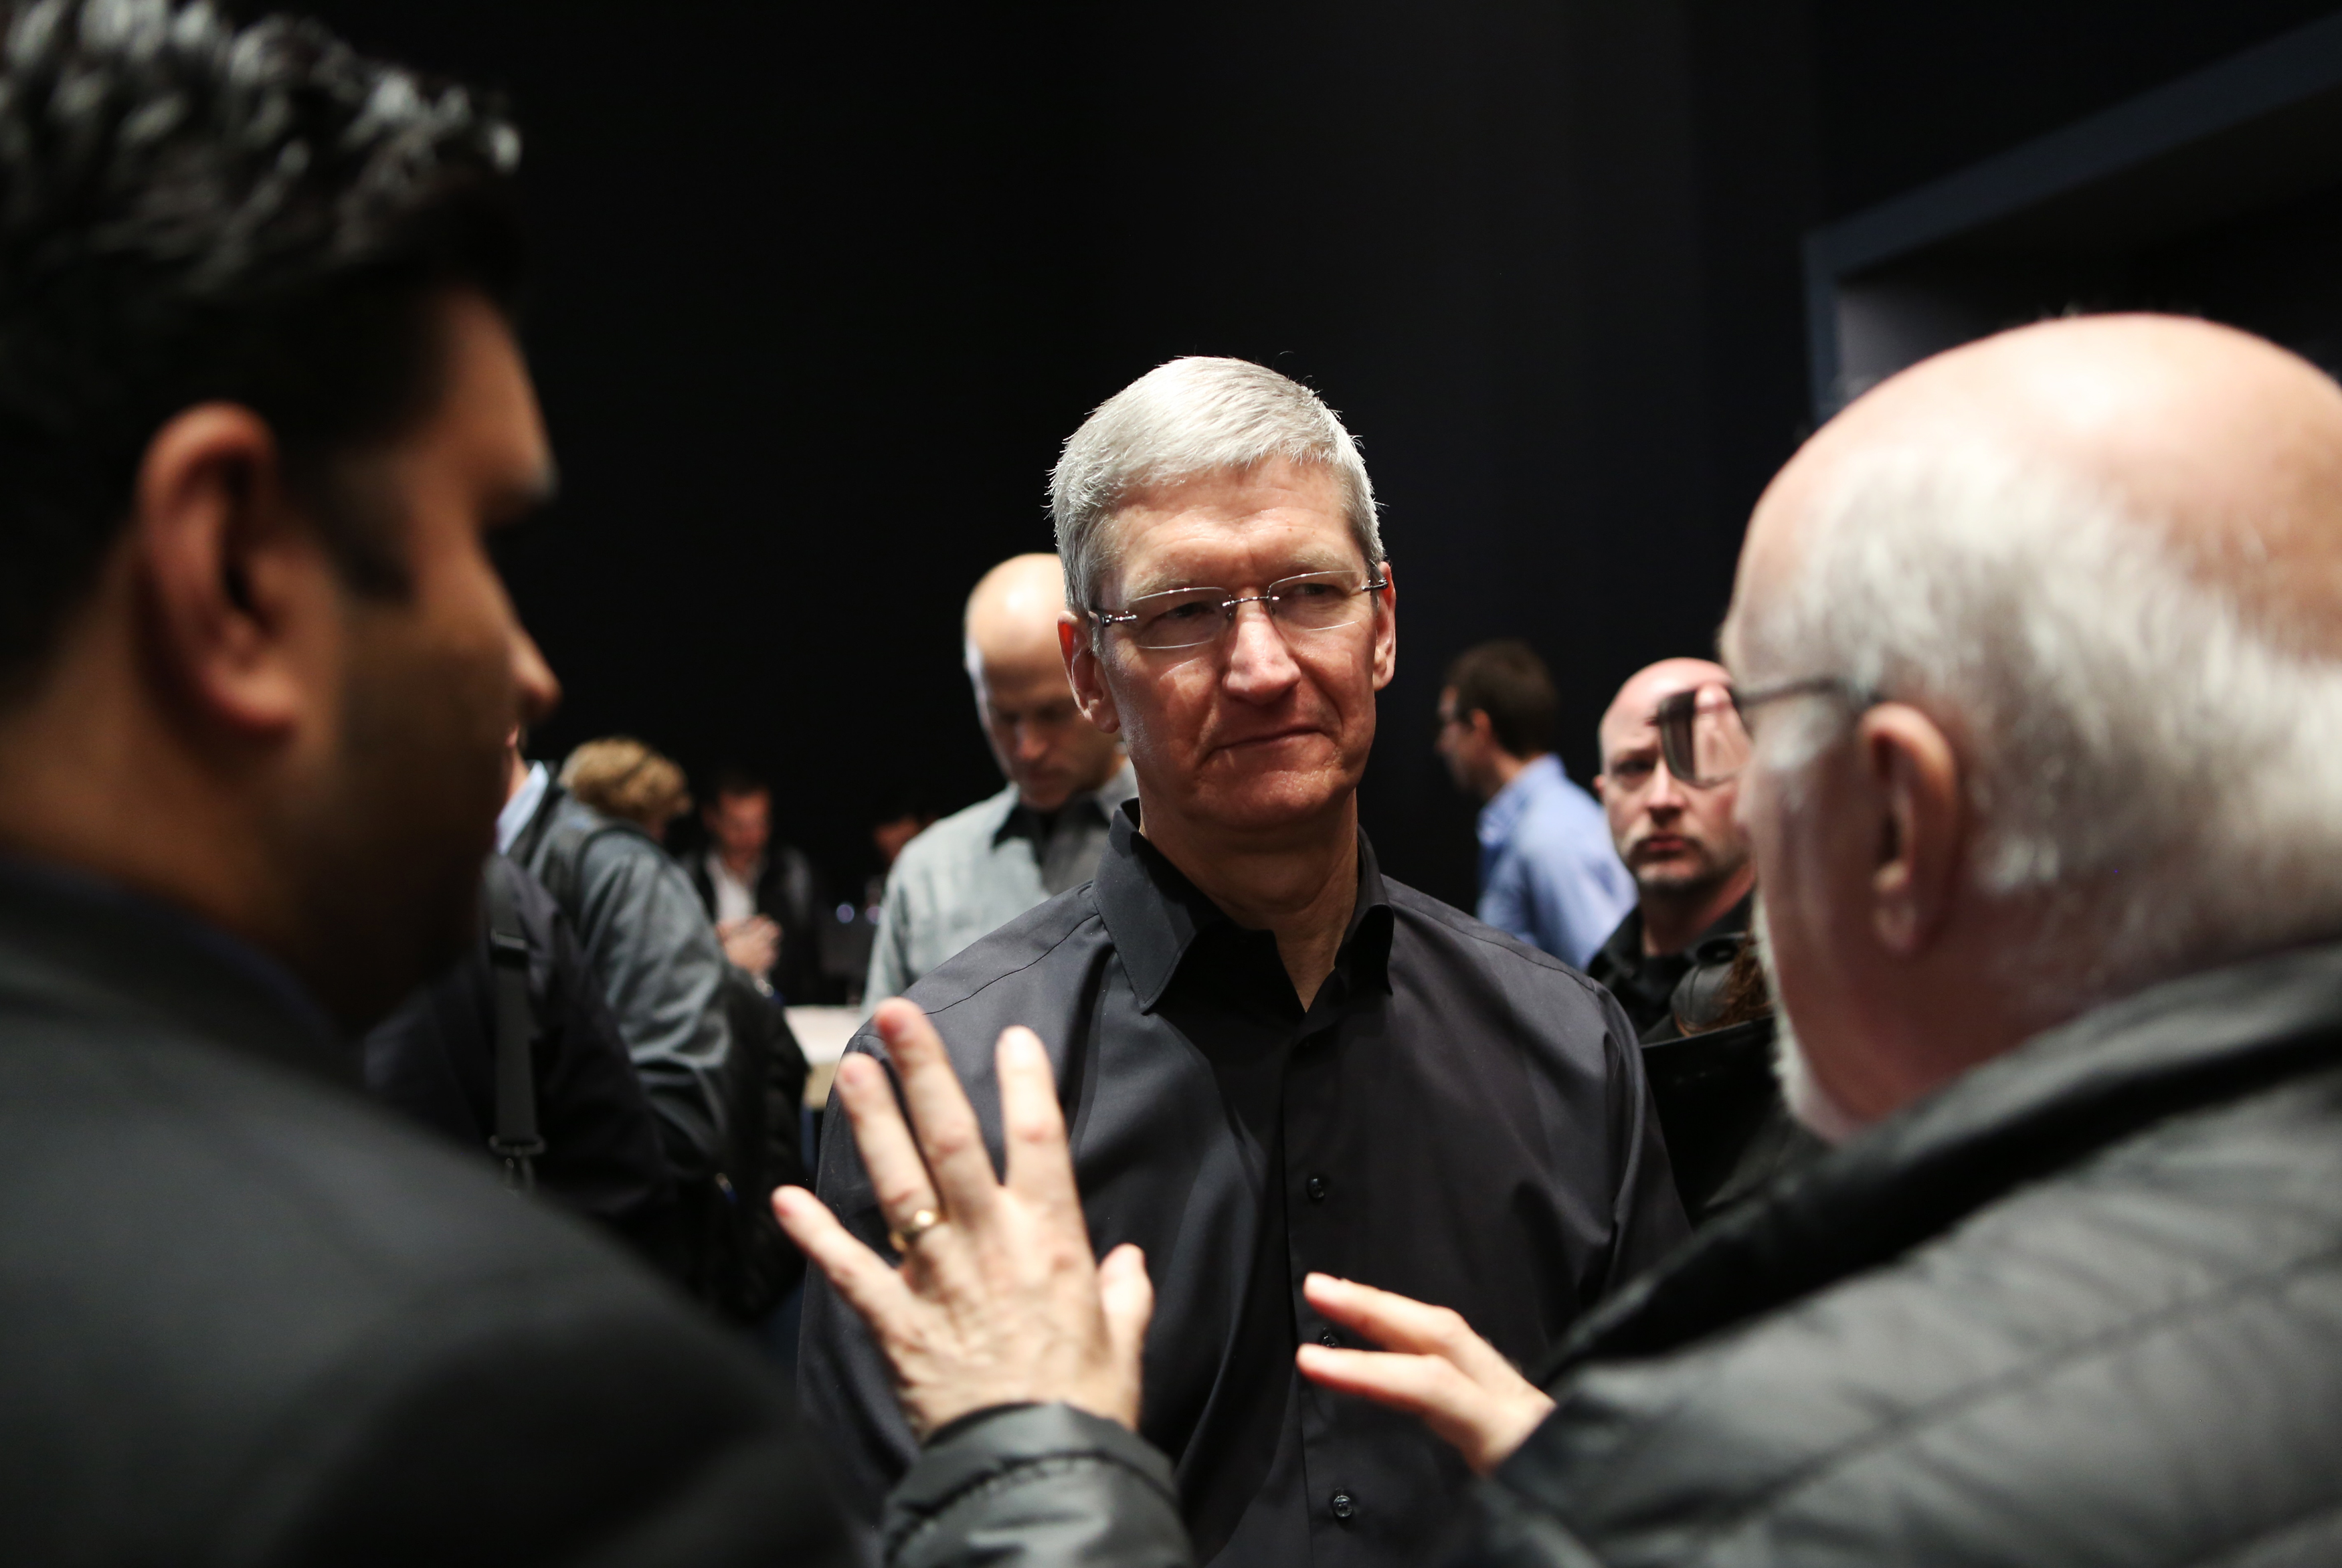 Walt Mossberg, Recode's co-founder (right foreground), speaks with Apple CEO Tim Cook.